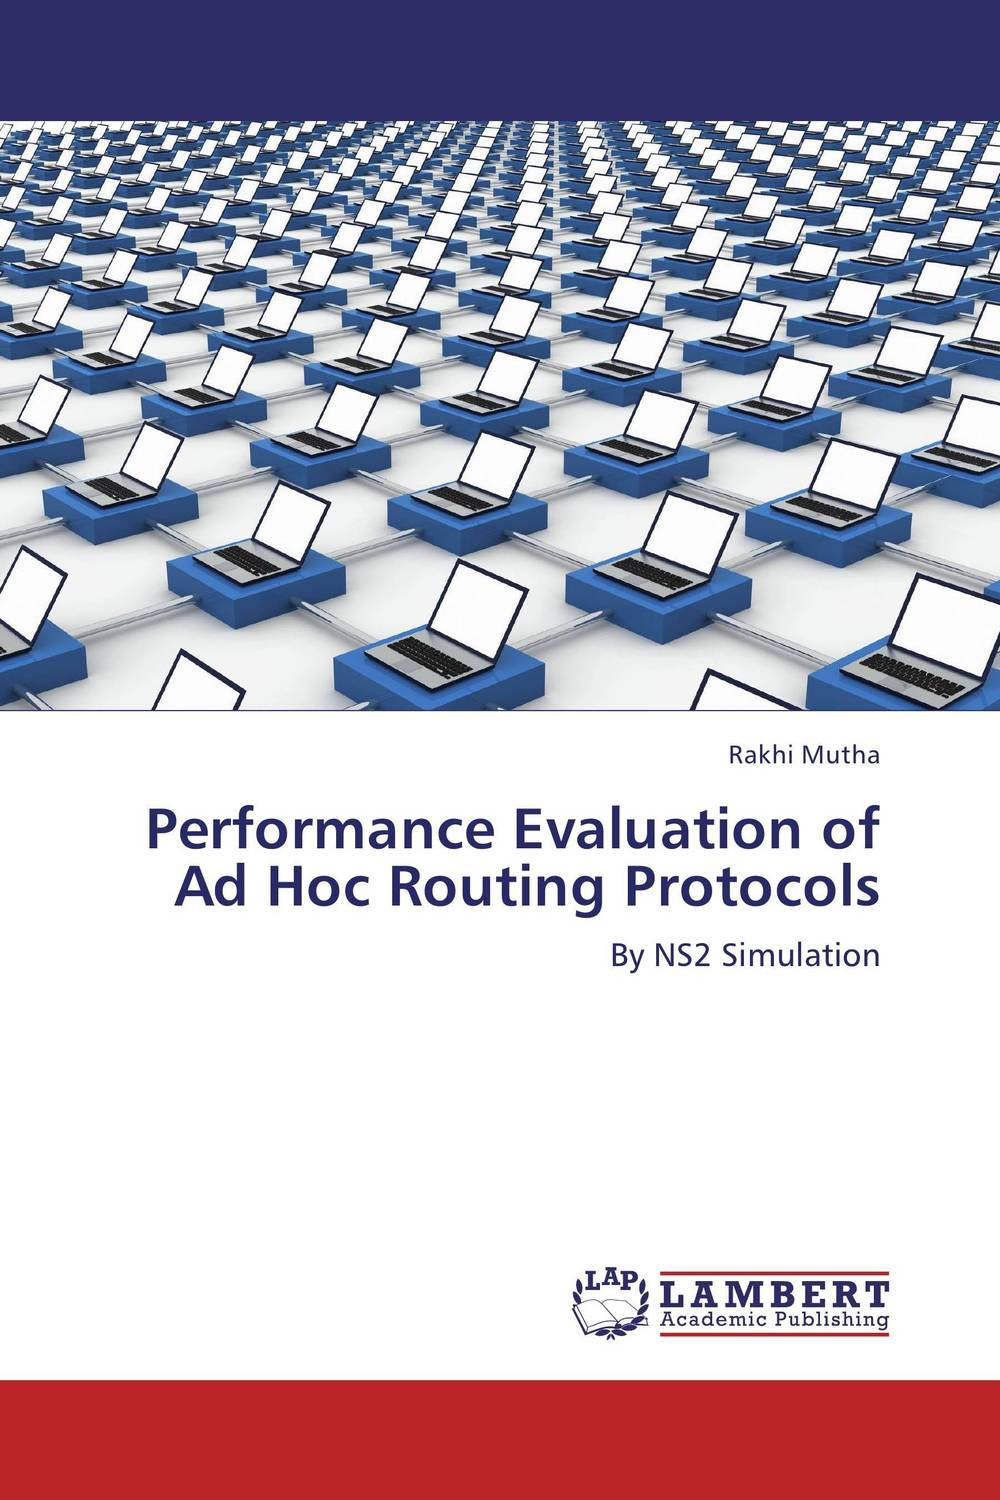 Performance Evaluation of Ad Hoc Routing Protocols in situ detection of dna damage methods and protocols